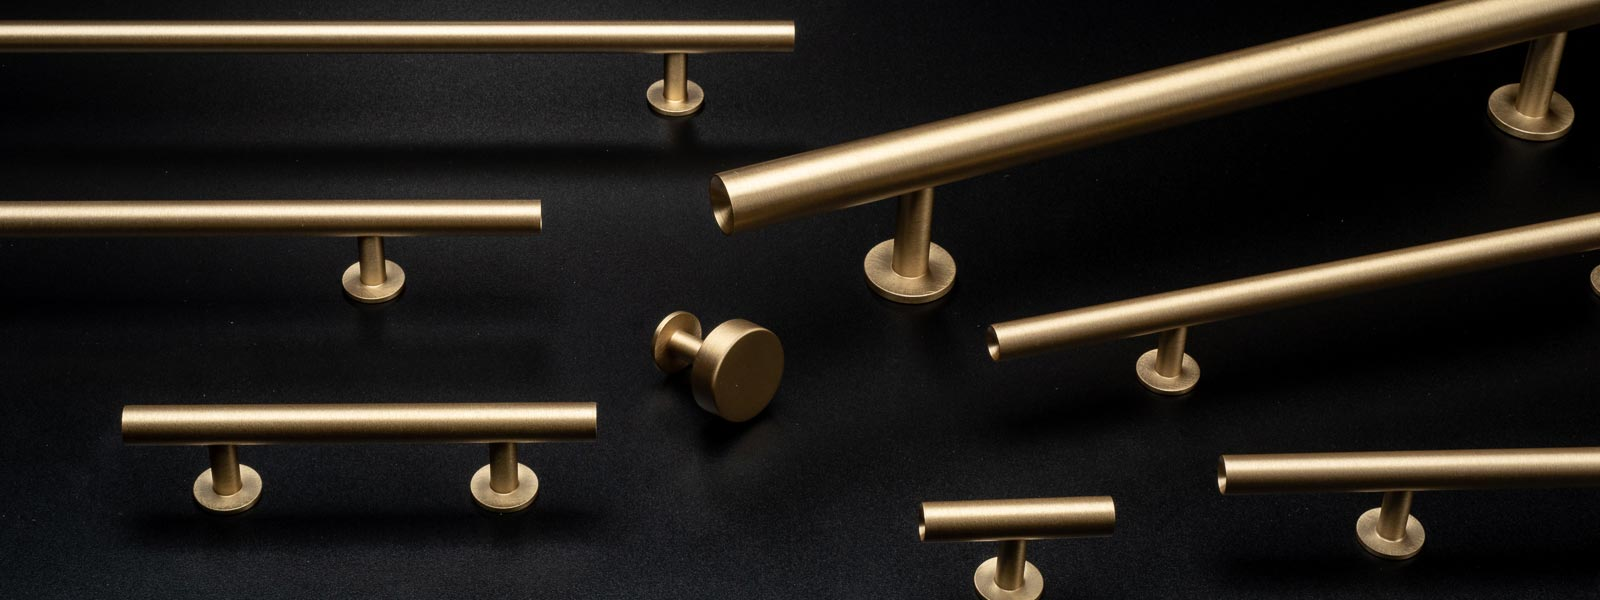 Brushed-Brass-Round-Bar-Series